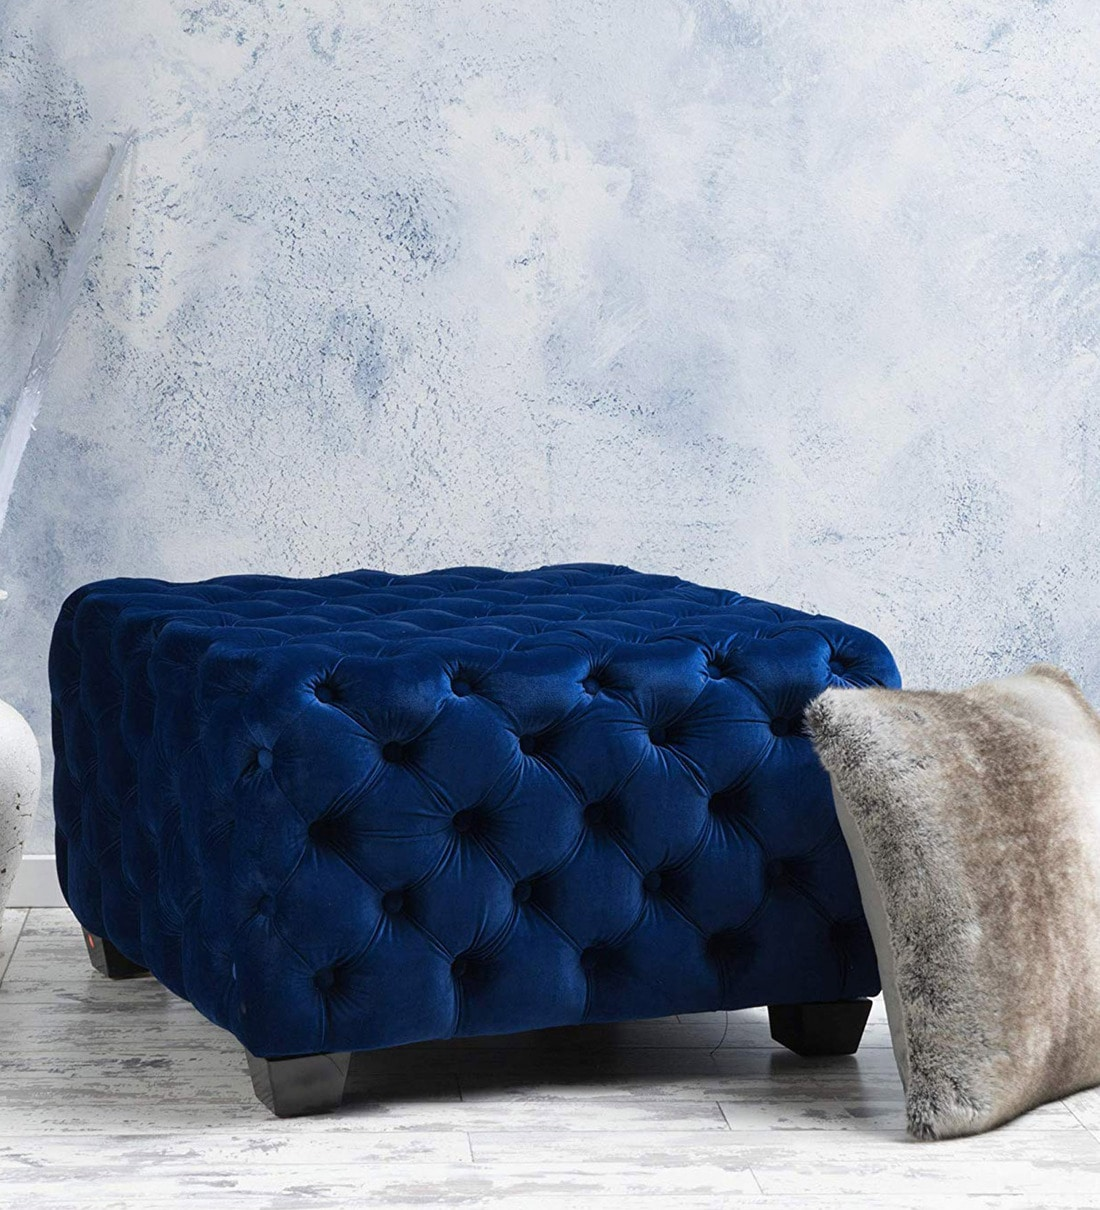 Buy Stylish Tufted Square Velvet Ottoman In Blue By Workspace Interio Online Ottomans Seating Furniture Pepperfry Product